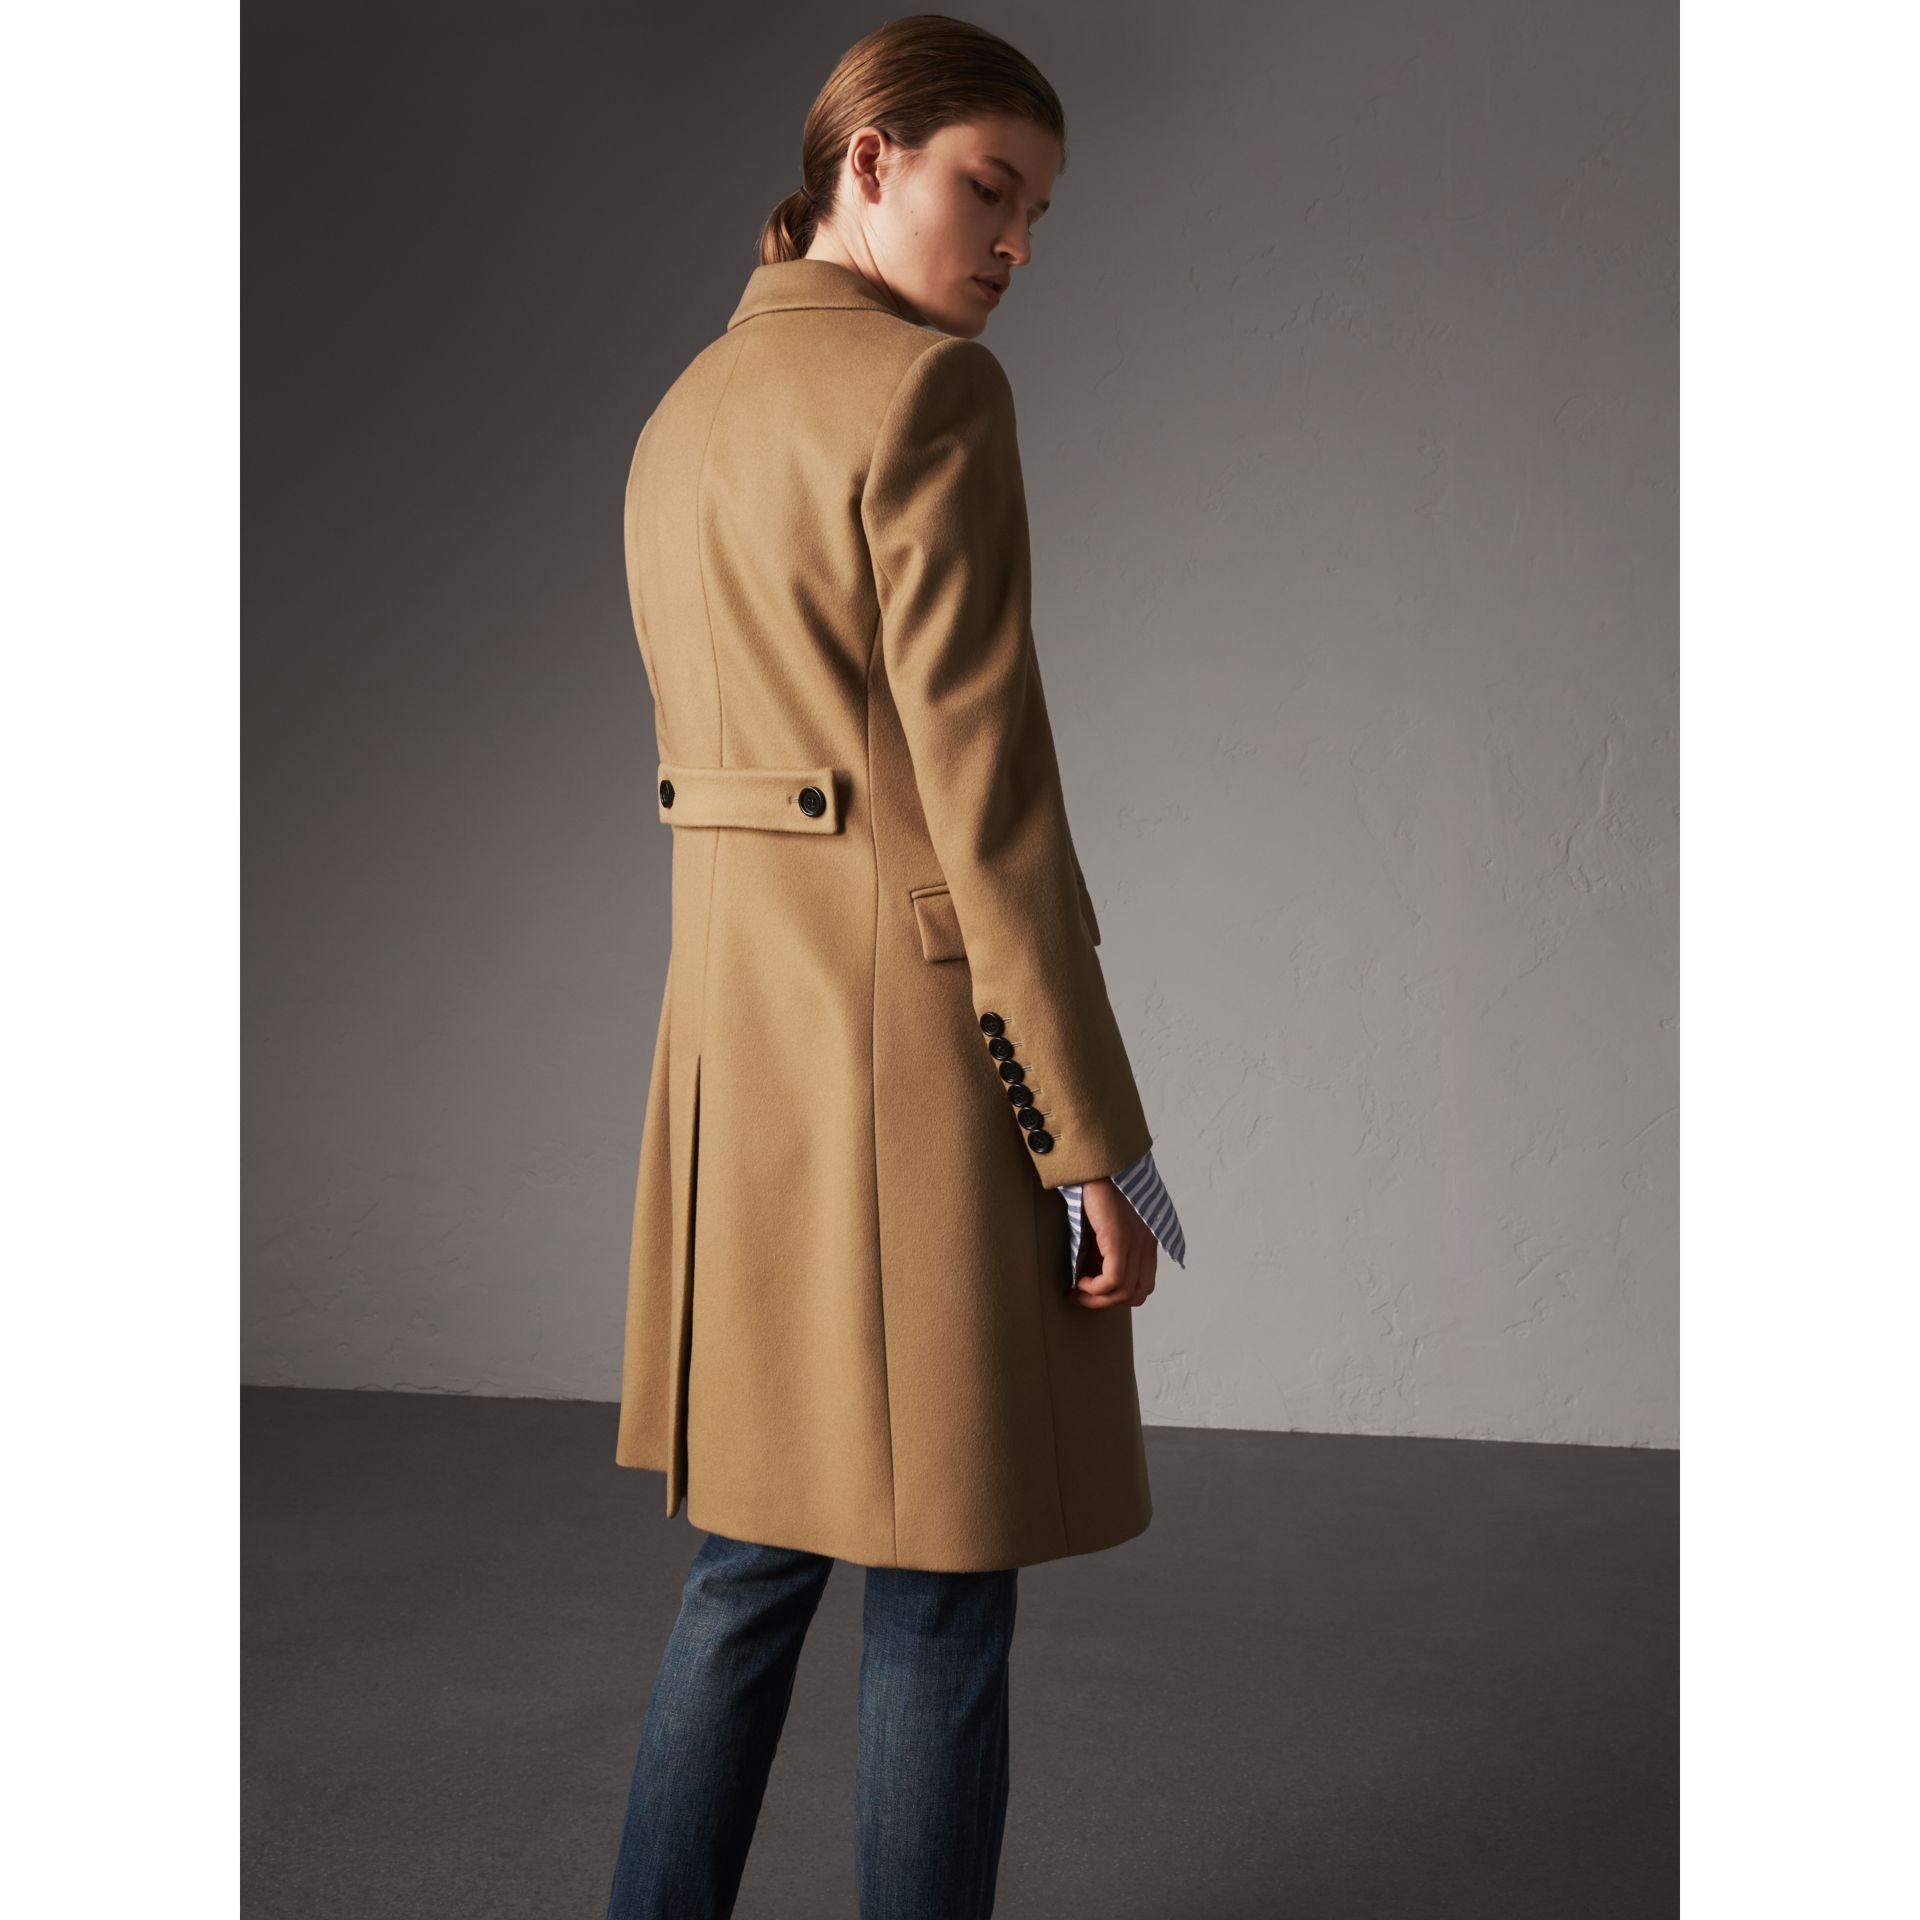 Wool Cashmere Tailored Coat in Camel - Women | Burberry - gallery image 3